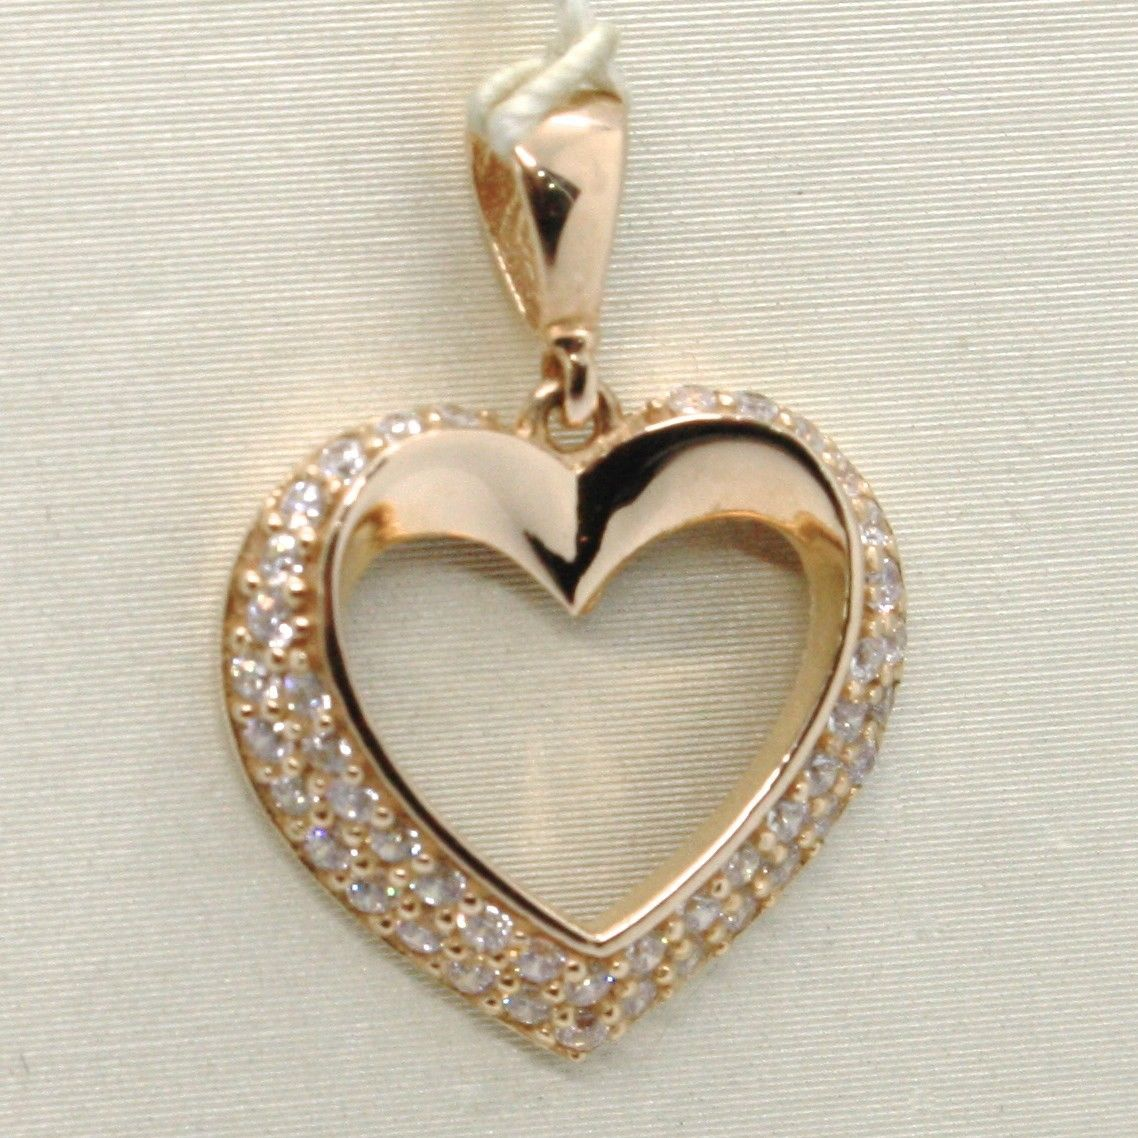 18K ROSE GOLD HEART PENDANT CHARM, CUBIC ZIRCONIA LUMINOUS BRIGHT, MADE IN ITALY